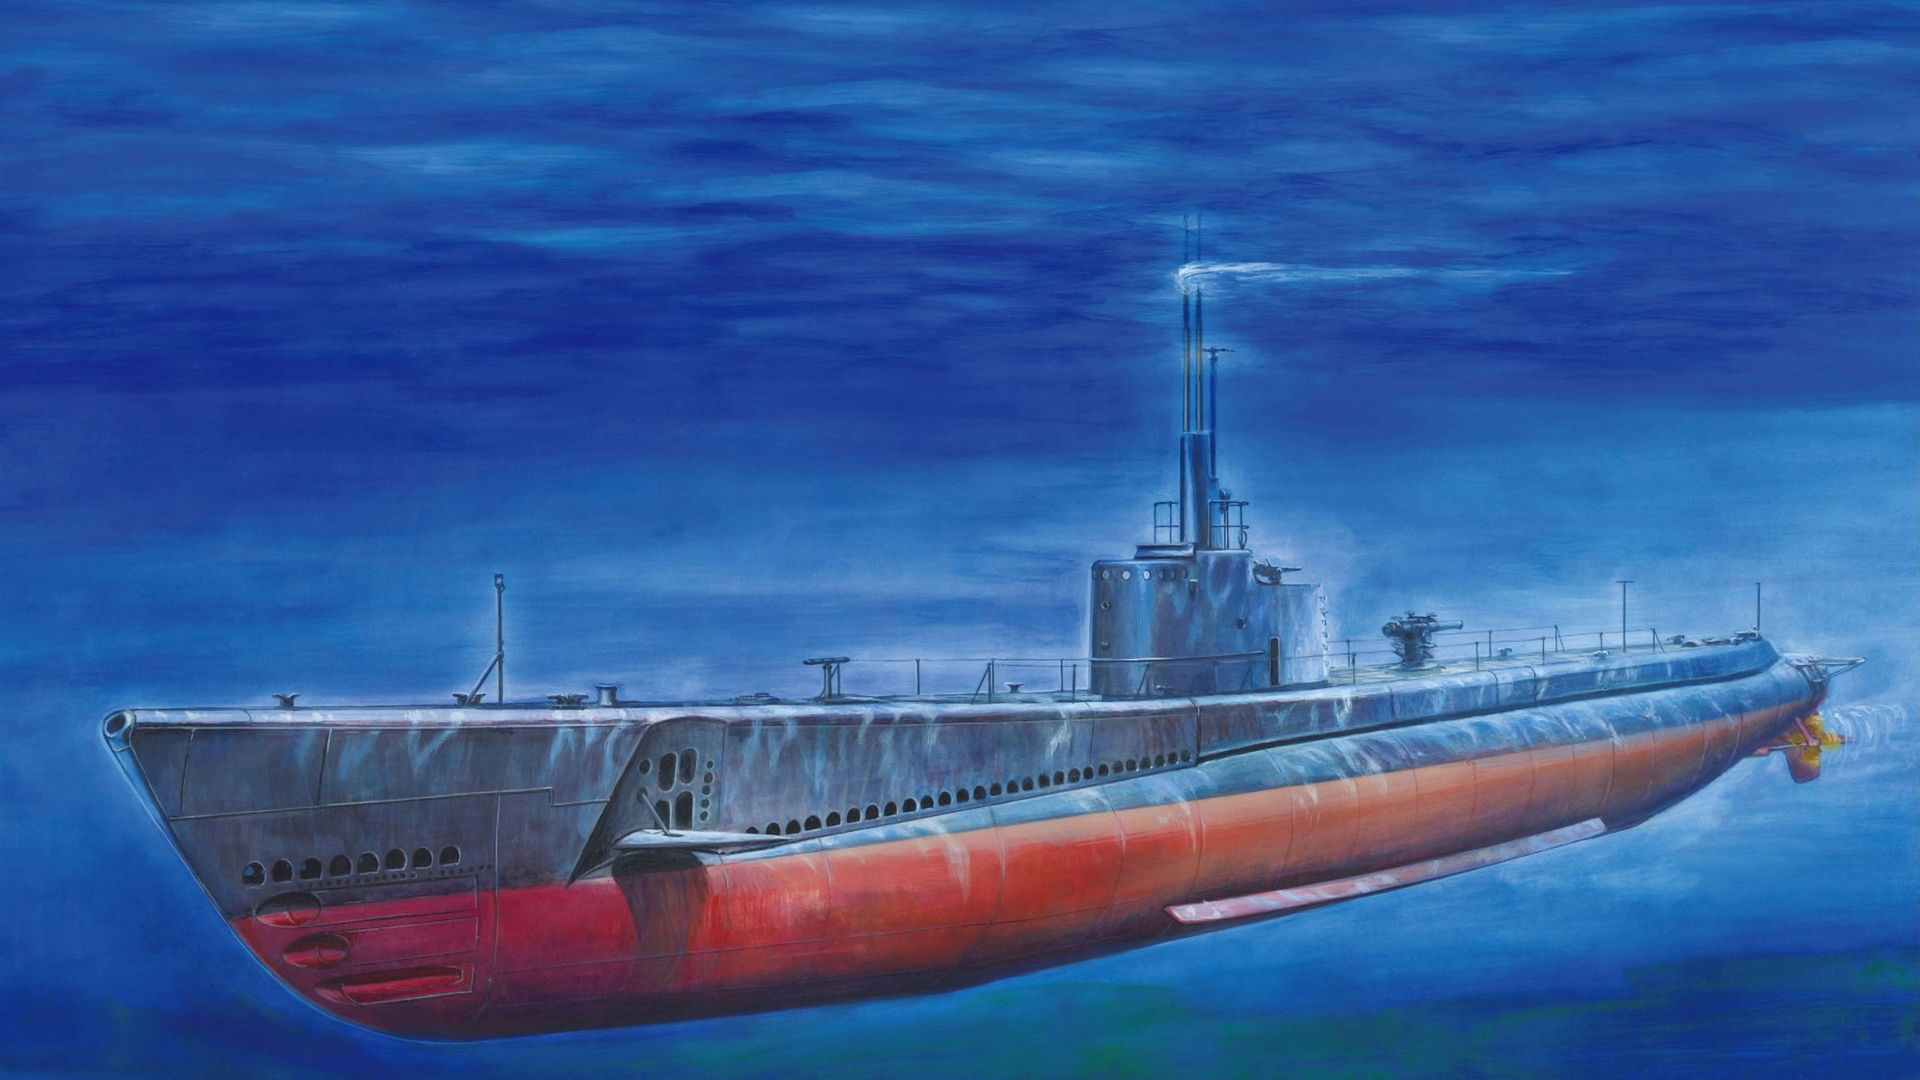 Submarine wallpapers and images   wallpapers pictures photos 1920x1080